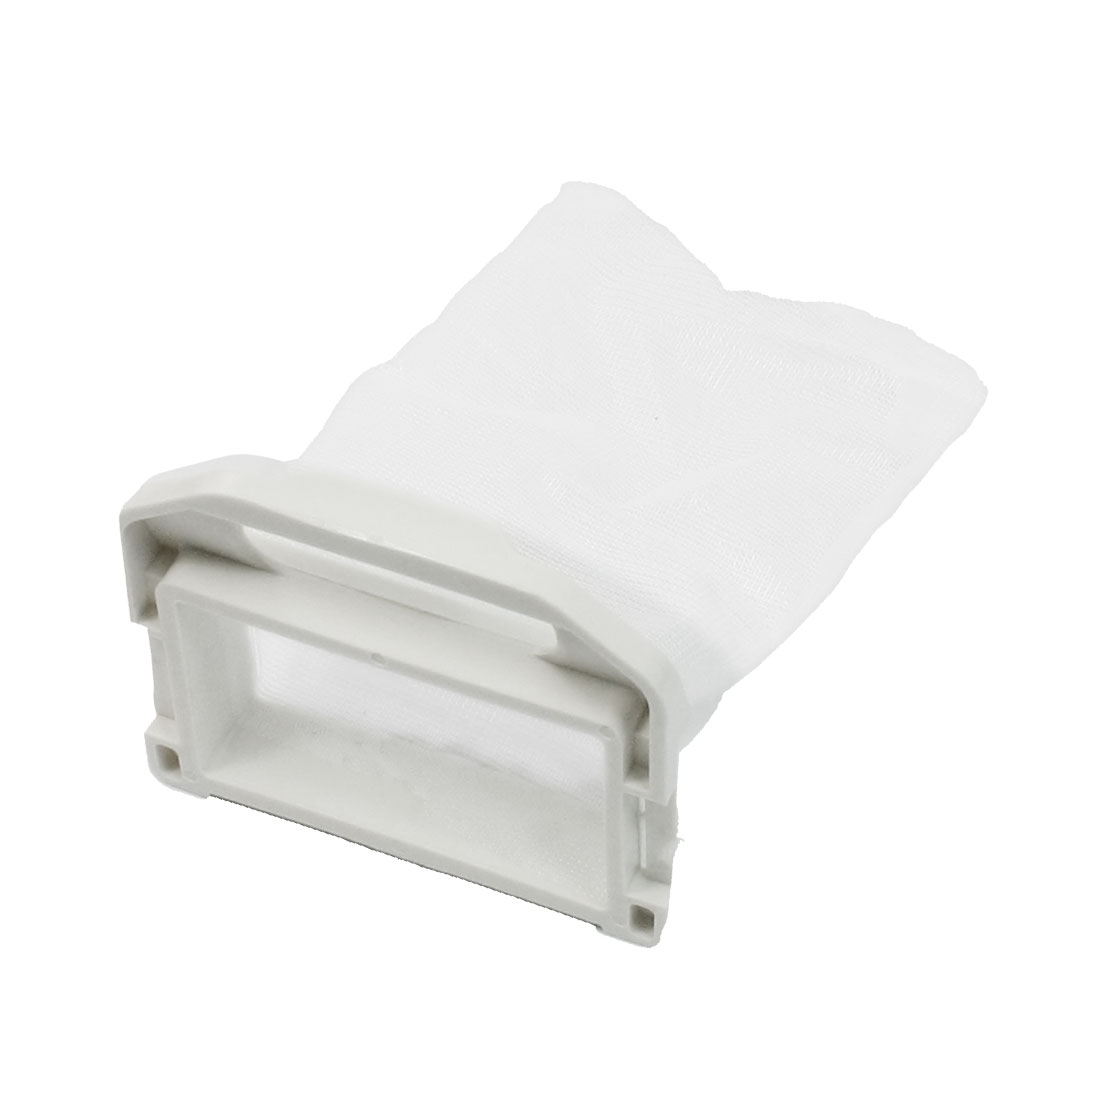 White Nylon Netty Filter Meshy Bag for Jinling Washing Machine